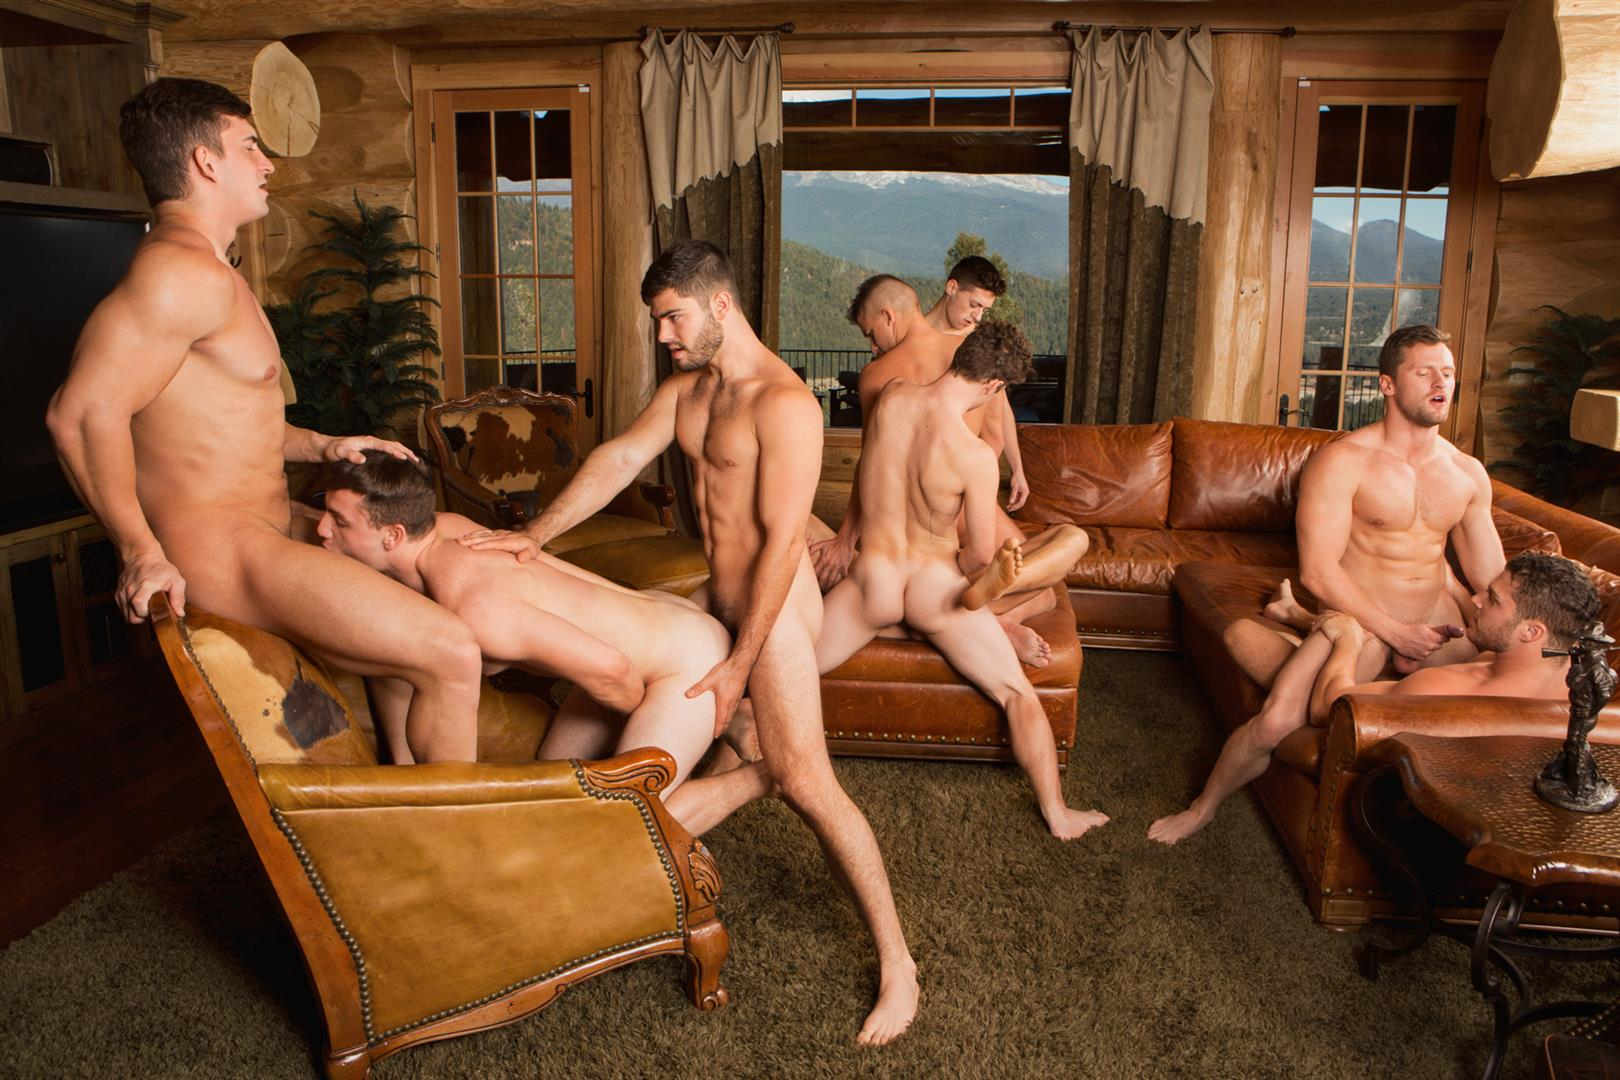 Sean-Cody-Winter-Getaway-Day-5-Big-Dick-Hunks-Fucking-Bareback-Amateur-Gay-Porn-14 Sean Cody Takes The Boys On A 8-Day Bareback Winter Getaway